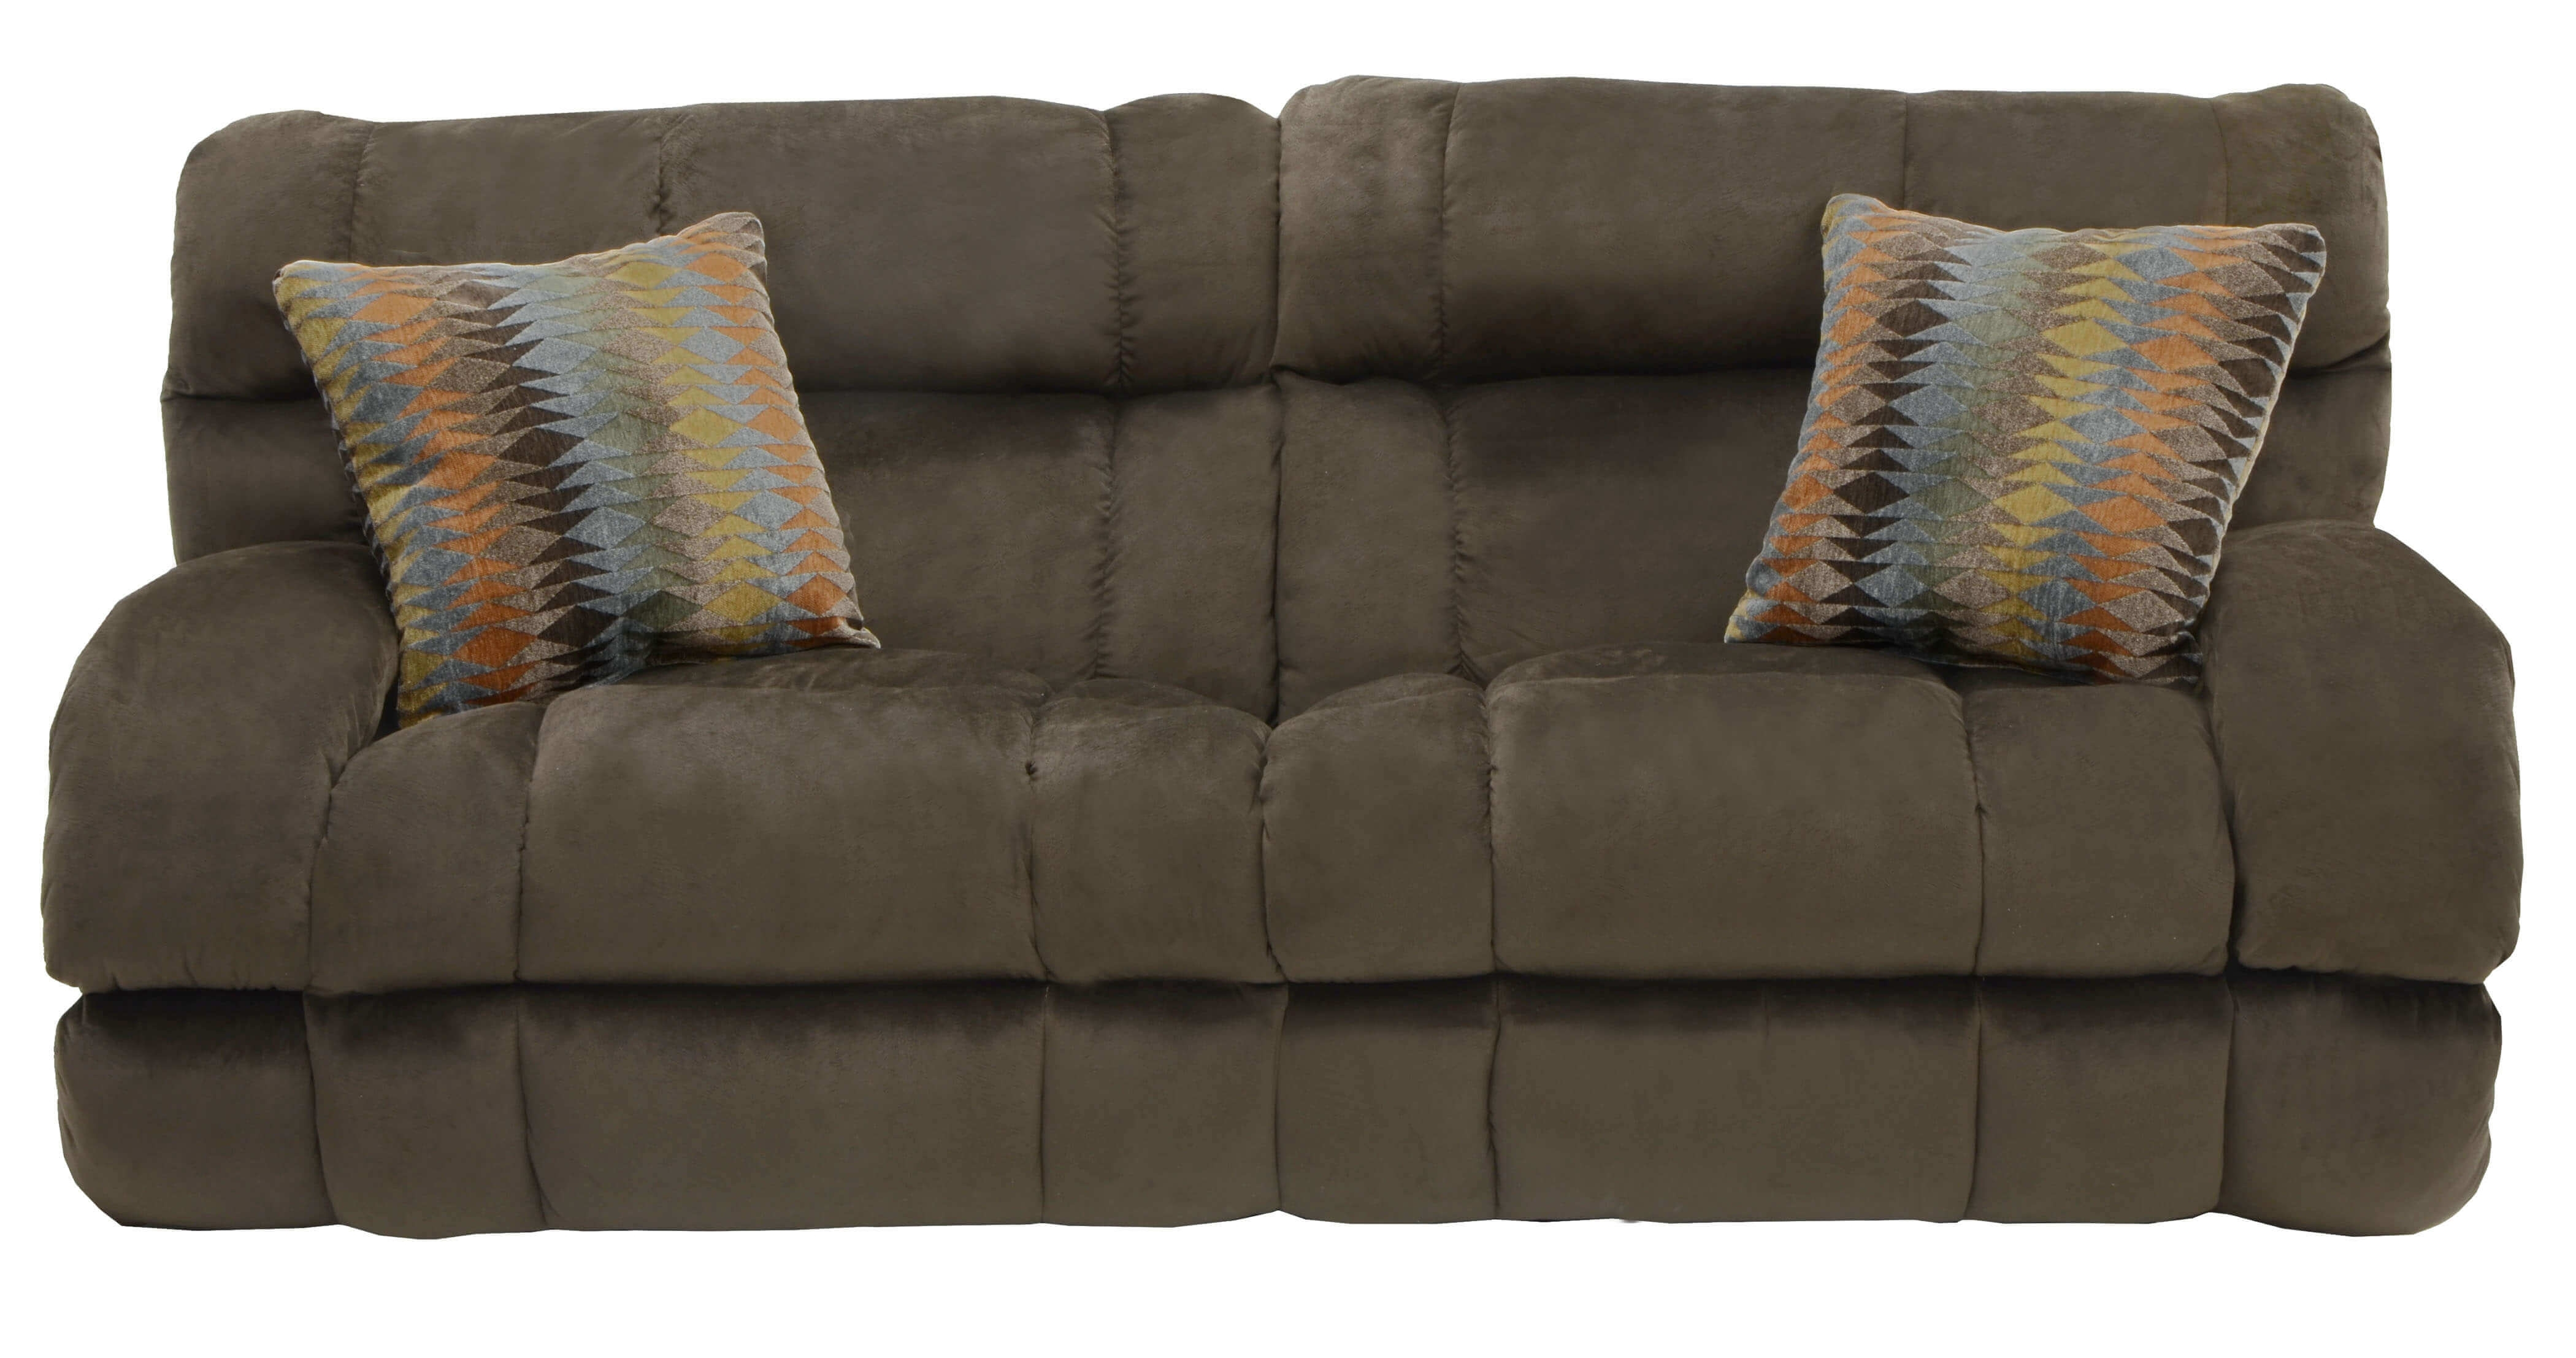 Catnapper Siesta Reclining Sofa | Delano's Furniture And Mattress With Delano Smoke 3 Piece Sectionals (Image 5 of 25)